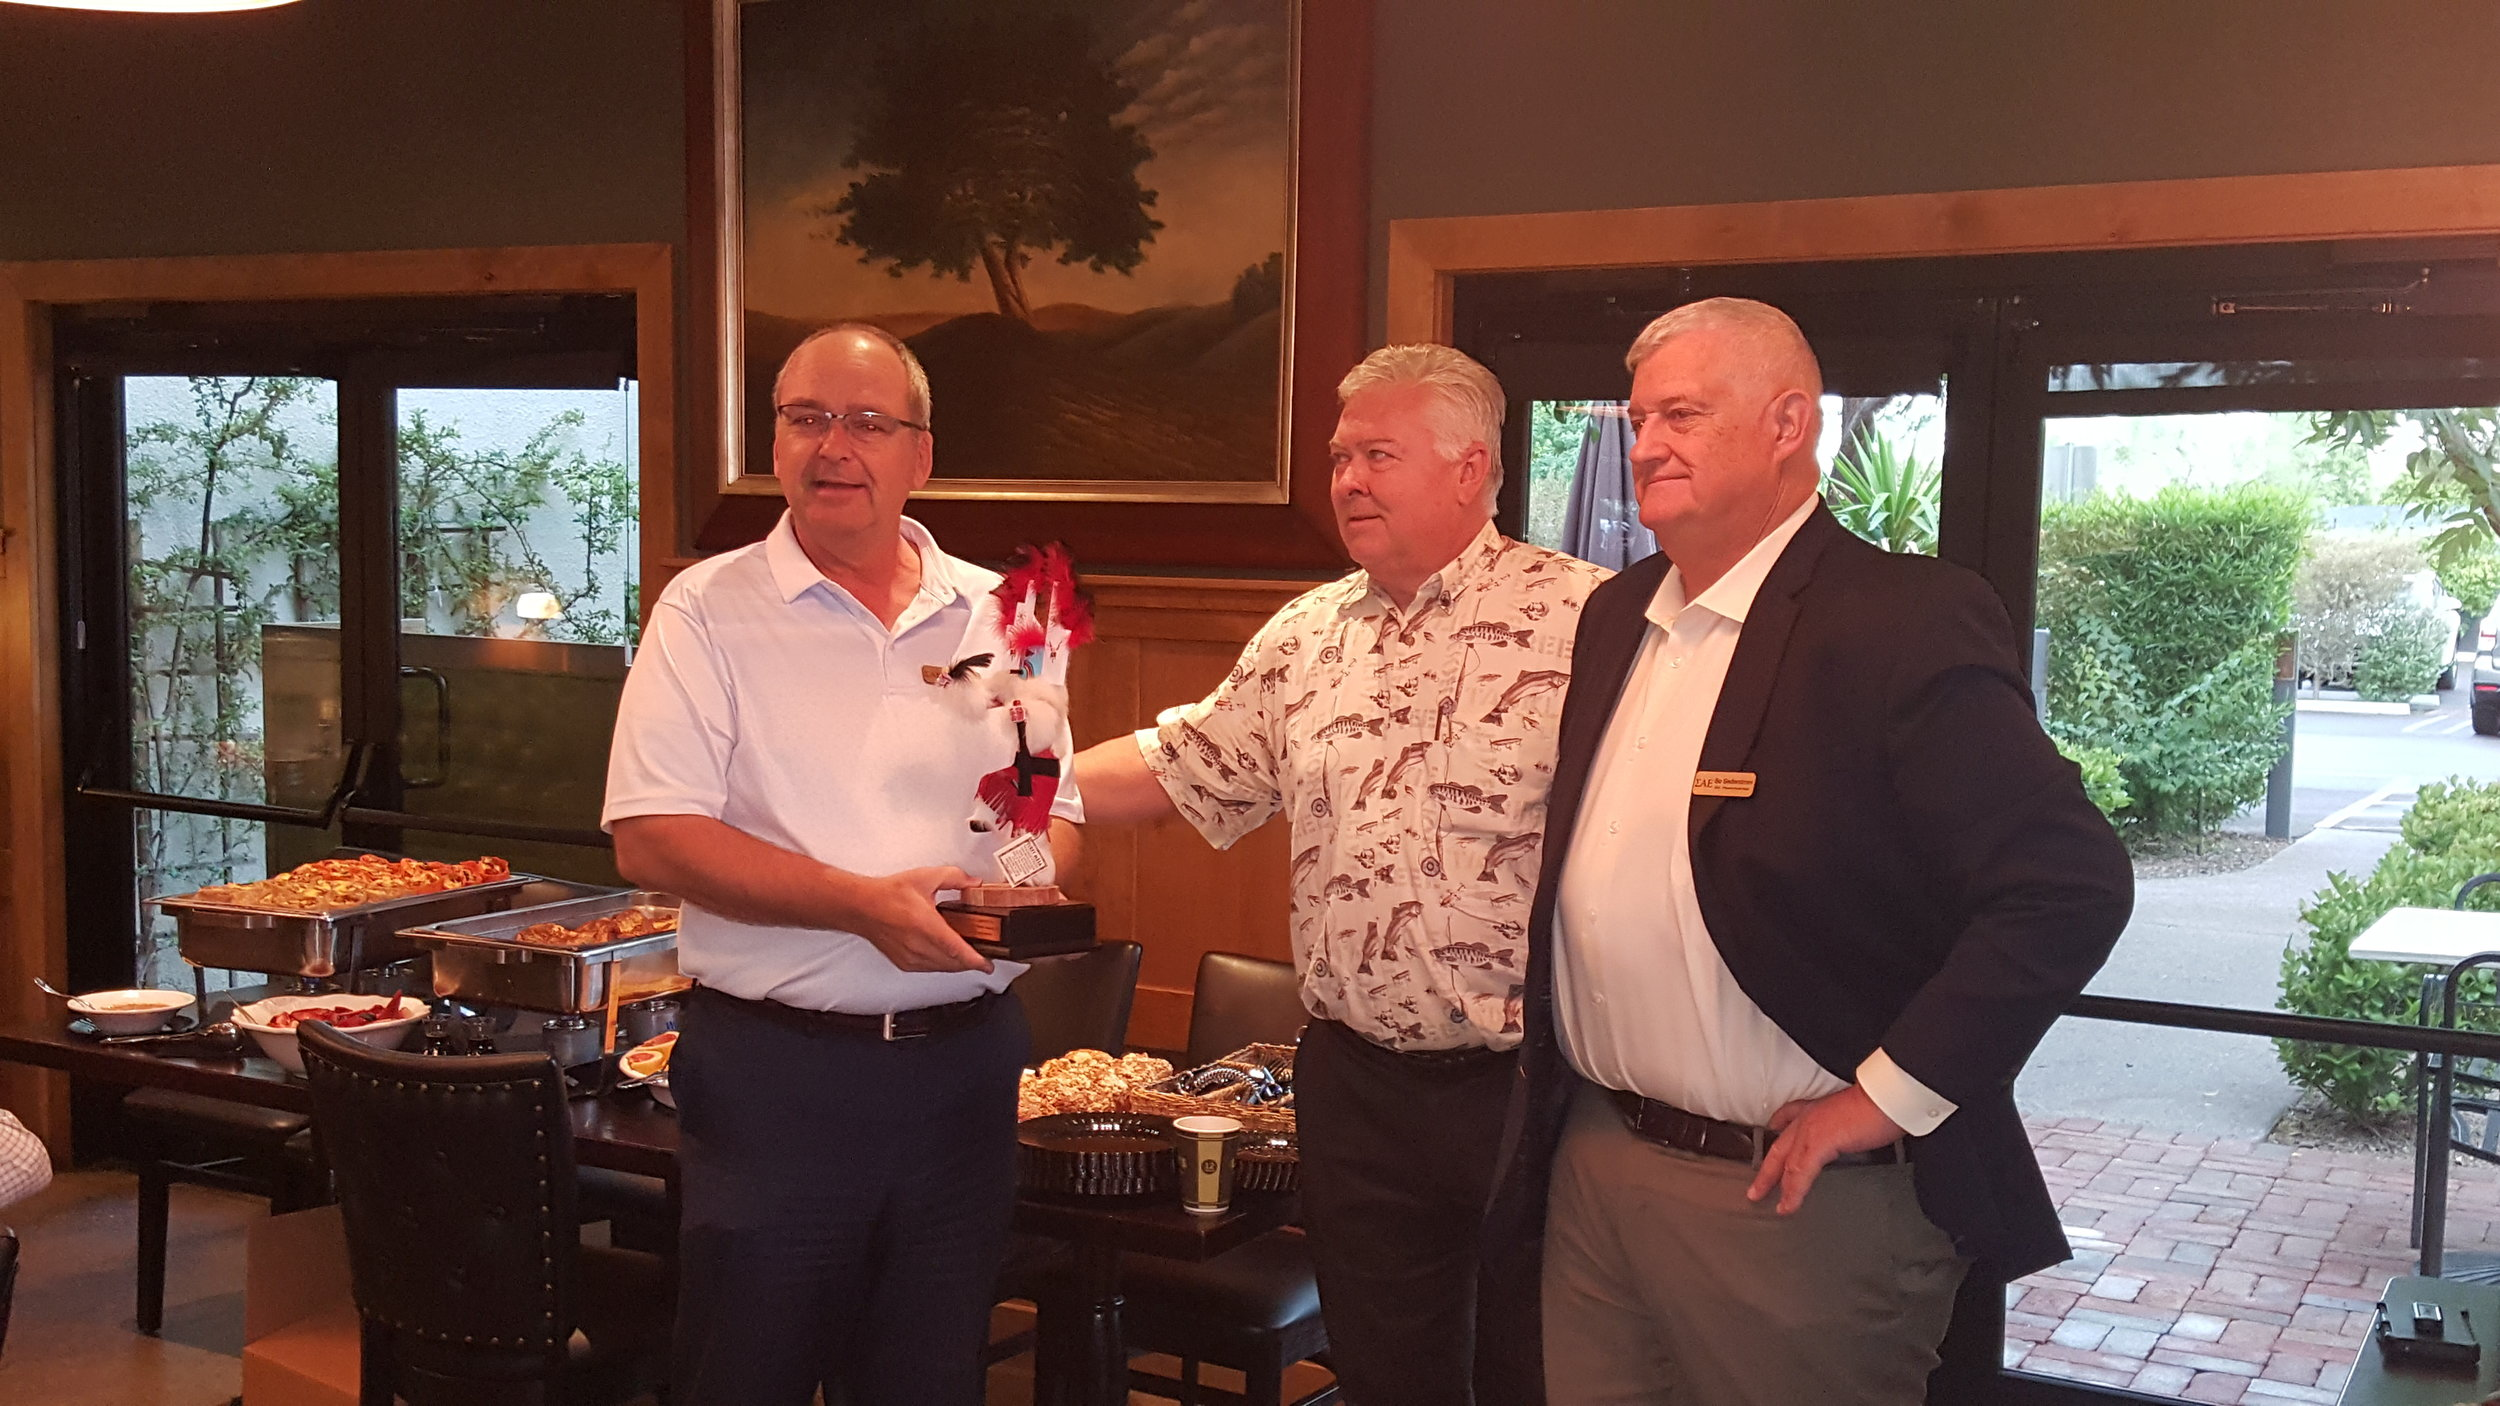 Todd Stingley, Harvest Kachina! - Past President Todd Stingley, NE L-P accepts his kachina award from Stan Strom, AZ Beta '82 and current President, Bo Sederstrom, AZ Gamma for his past service as President of the SAE Phoenix Alumni, Inc.